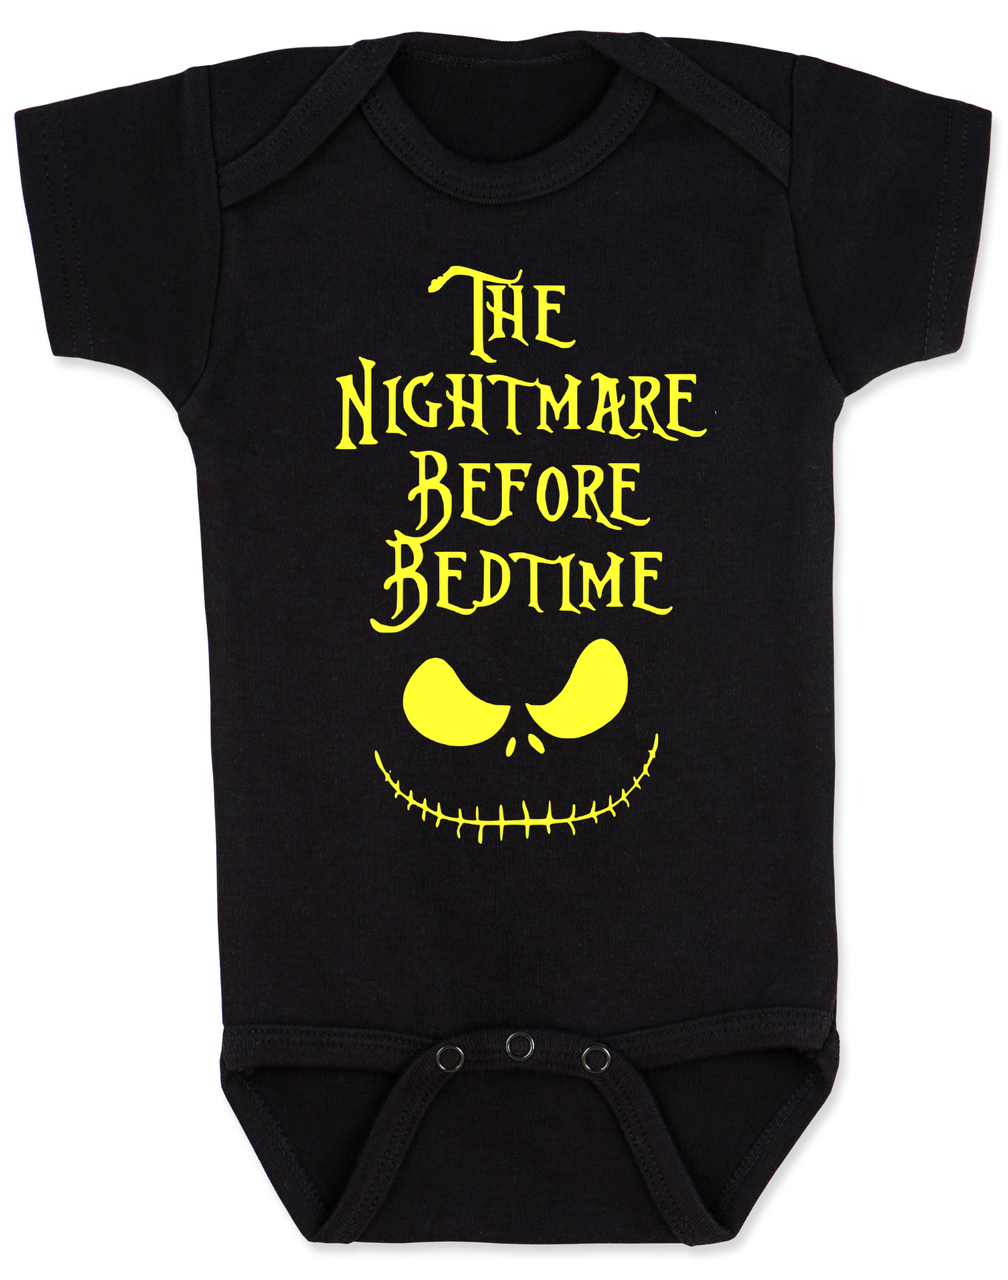 Newborn to Toddler Ki Christmas in July SALE Cute Movie Lover Baby Bodysuits Little Slimmer Funny Saying Retro Movie Tshirt Collection